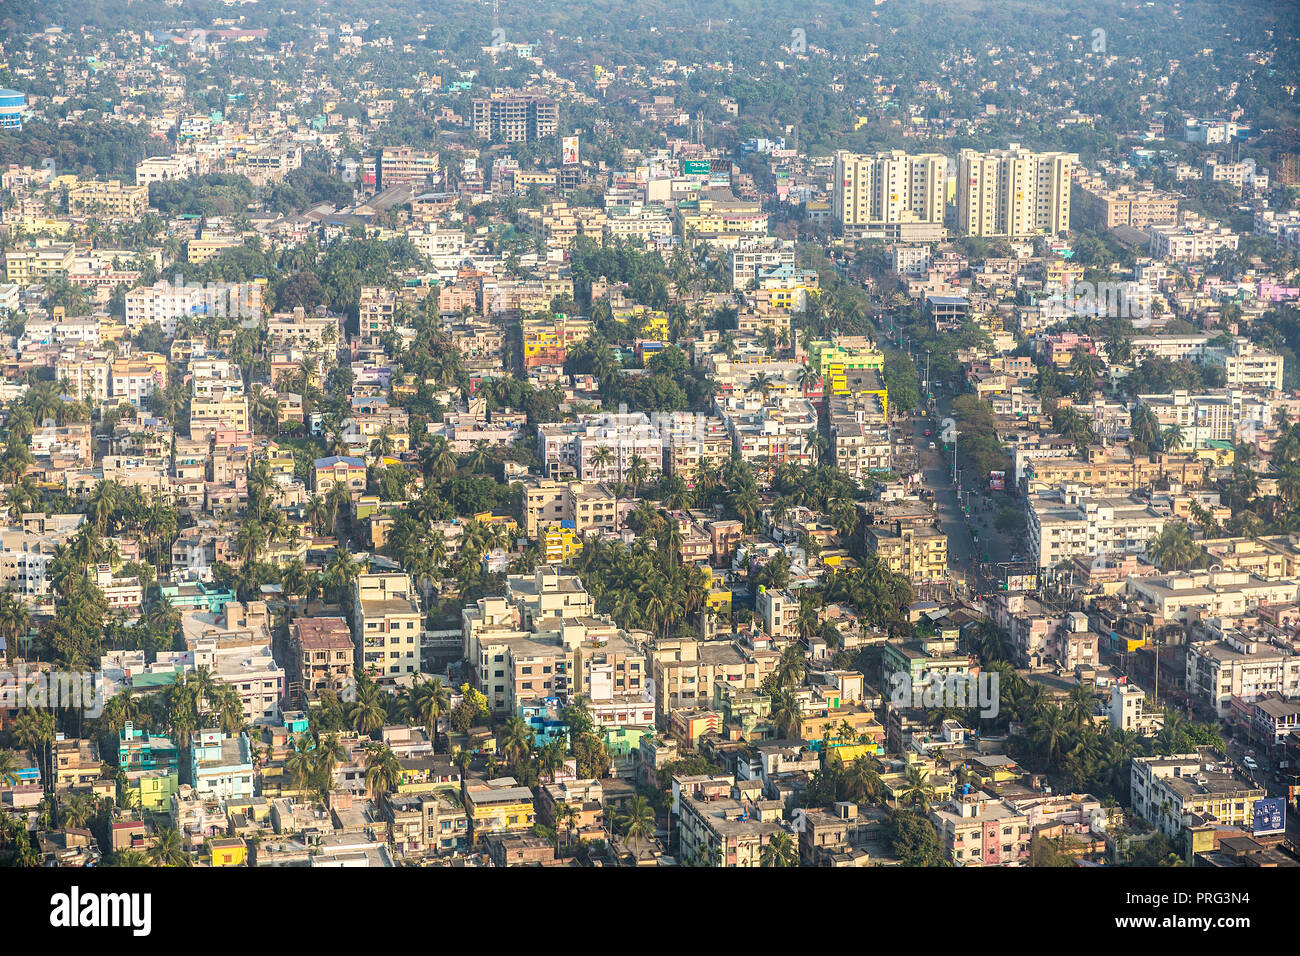 Aerial view over residential area of Kolkata, India - Stock Image